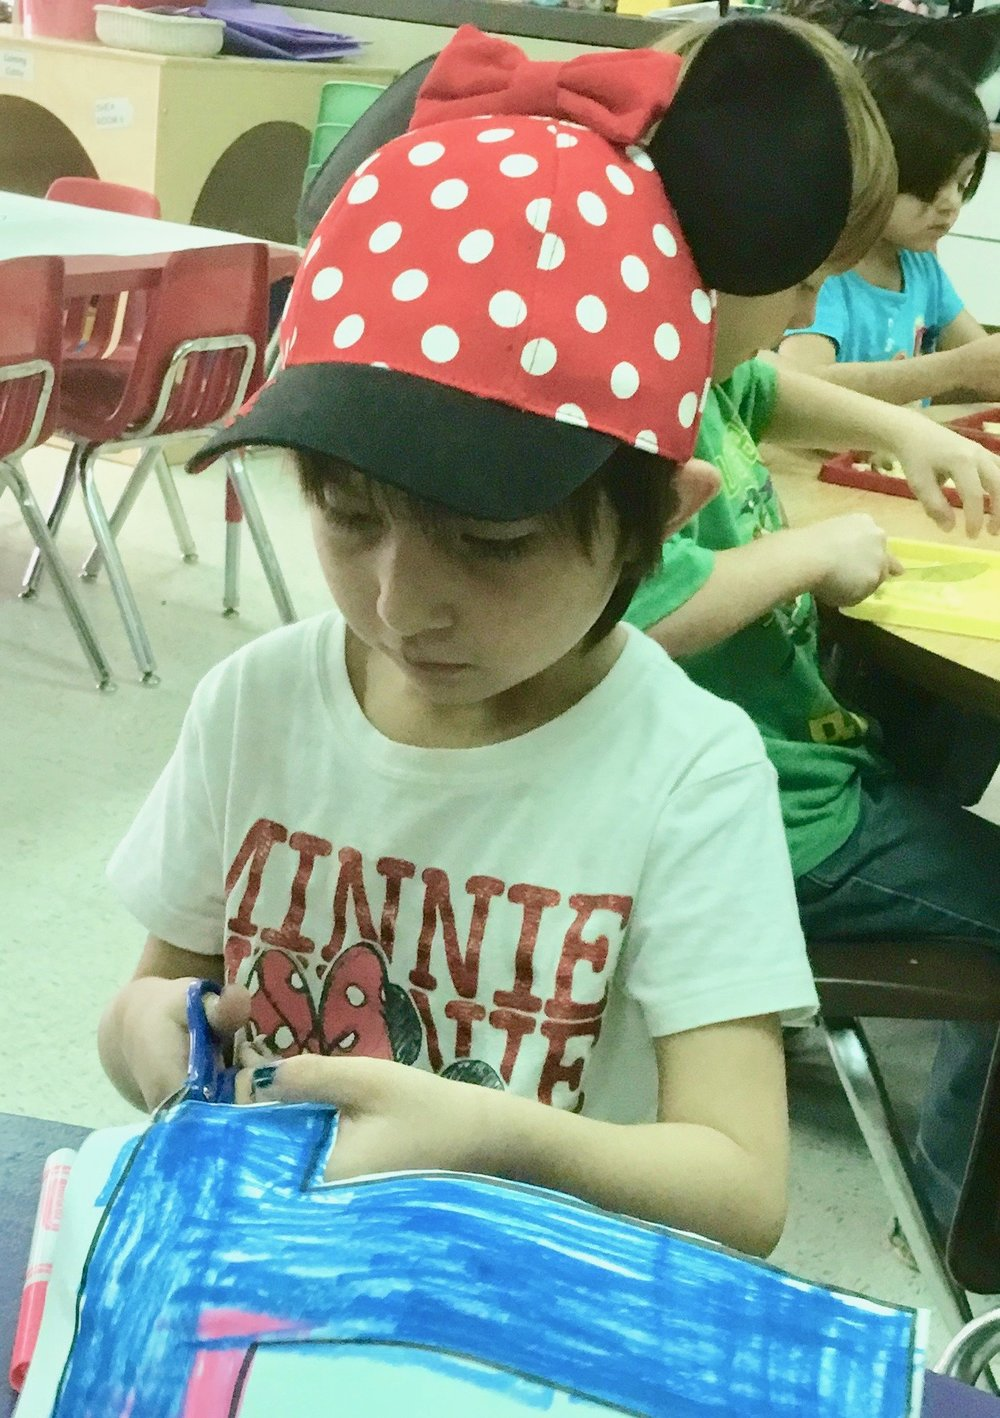 A pre-K Minnie Mouse enthusiast shows off her skills with a scissors.